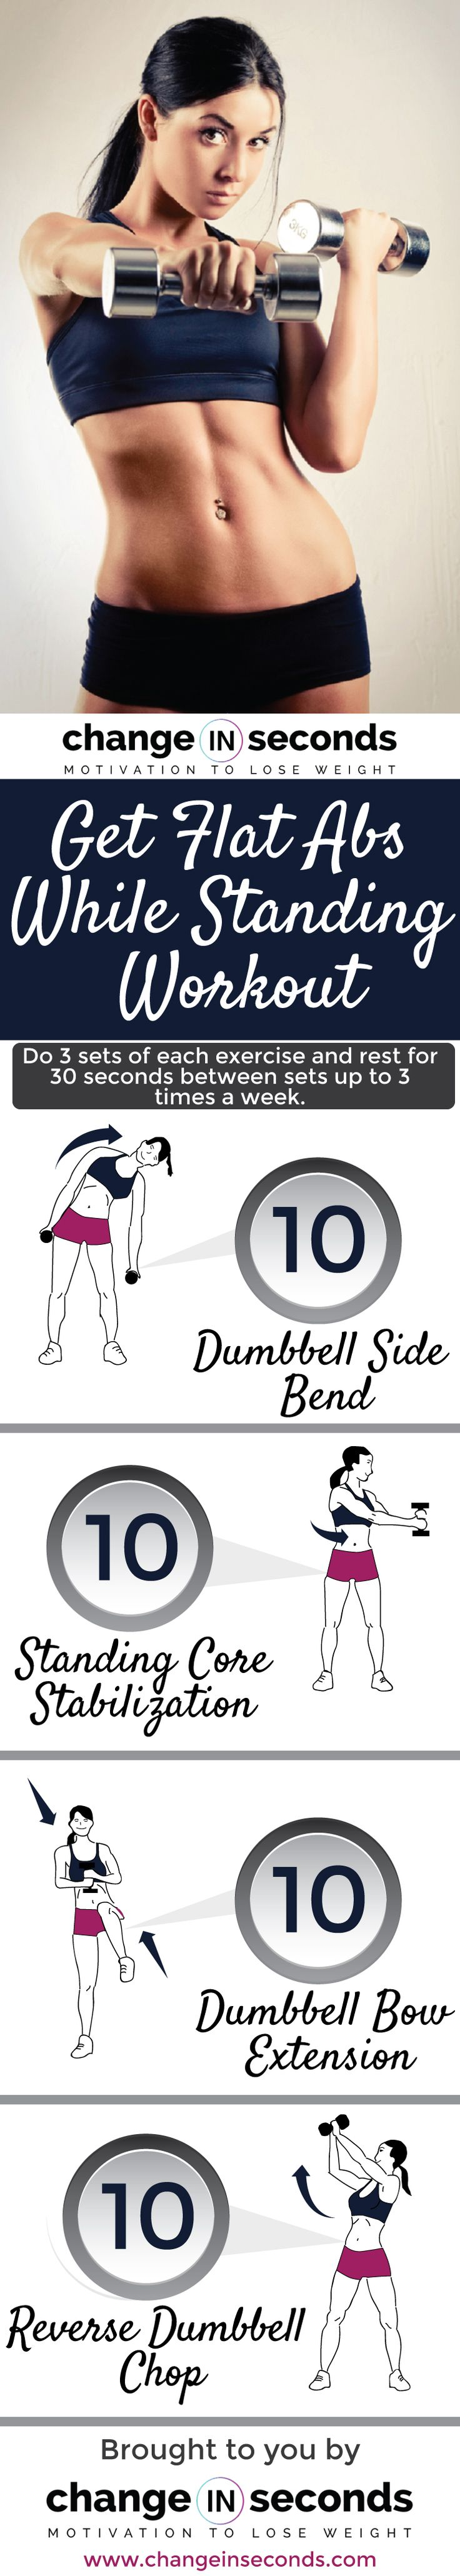 Get Flat Abs While Standing Workout (Download PDF) http://www.changeinseconds.com/get-flat-abs-while-standing-workout/